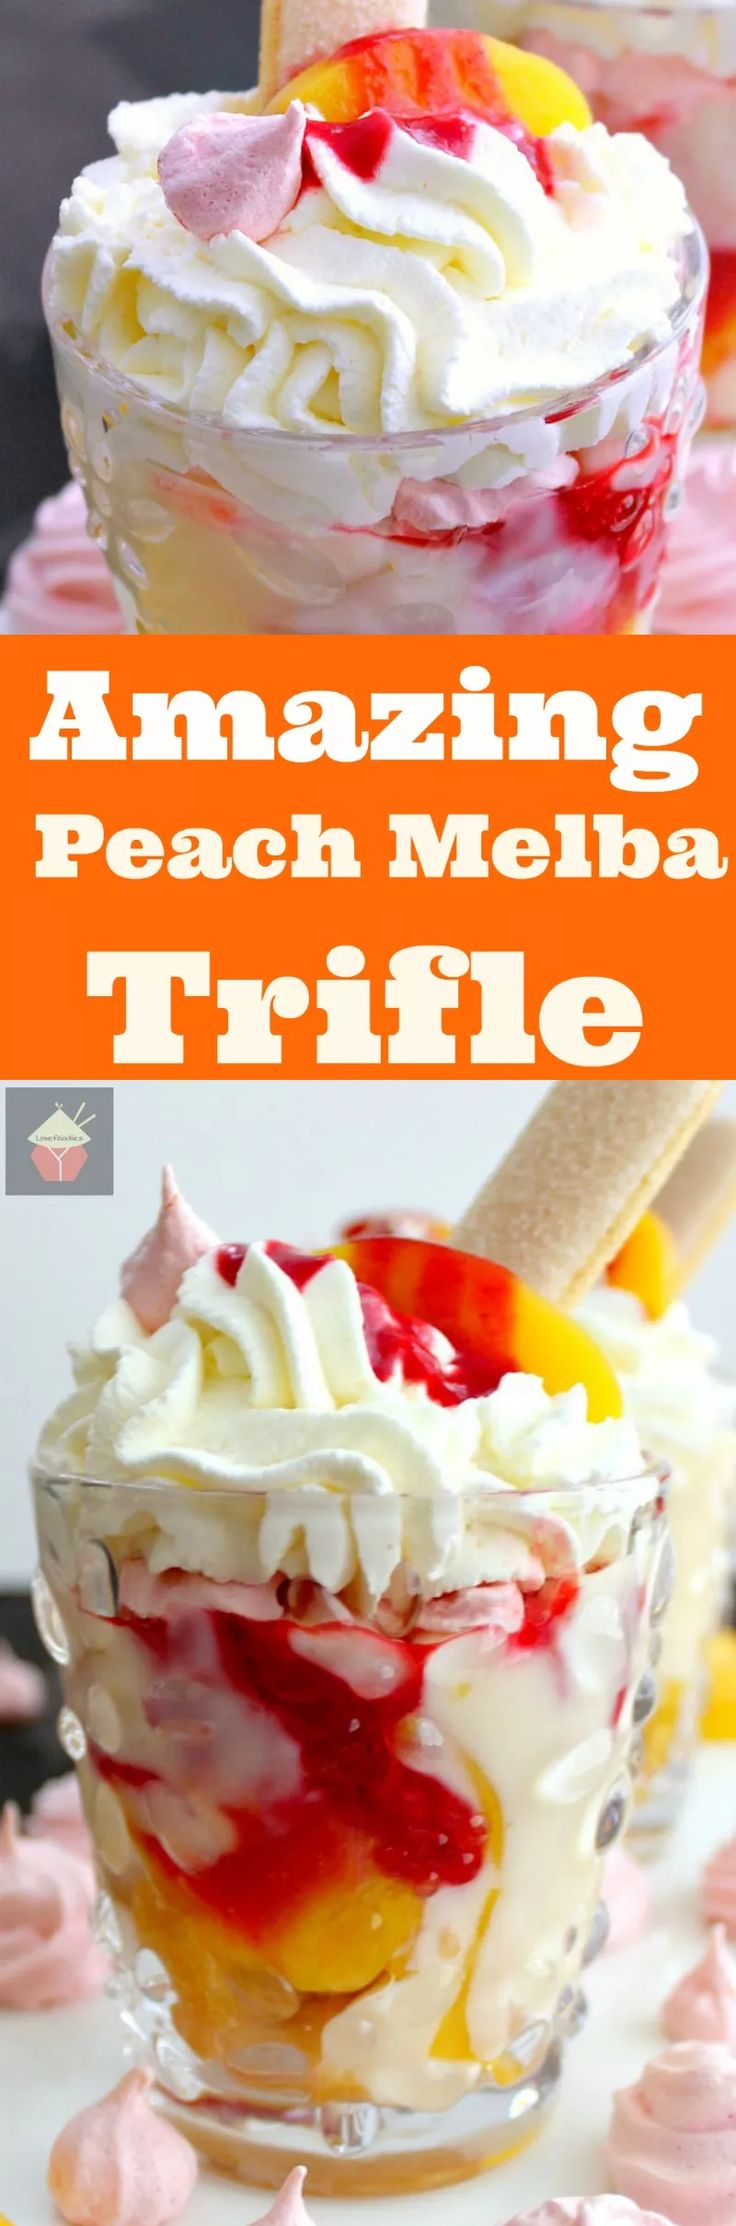 Amazing Peach Melba Trifle.  Amazingly easy and so delicious. Simply OUT OF THIS WORLD!  | Lovefoodies.com